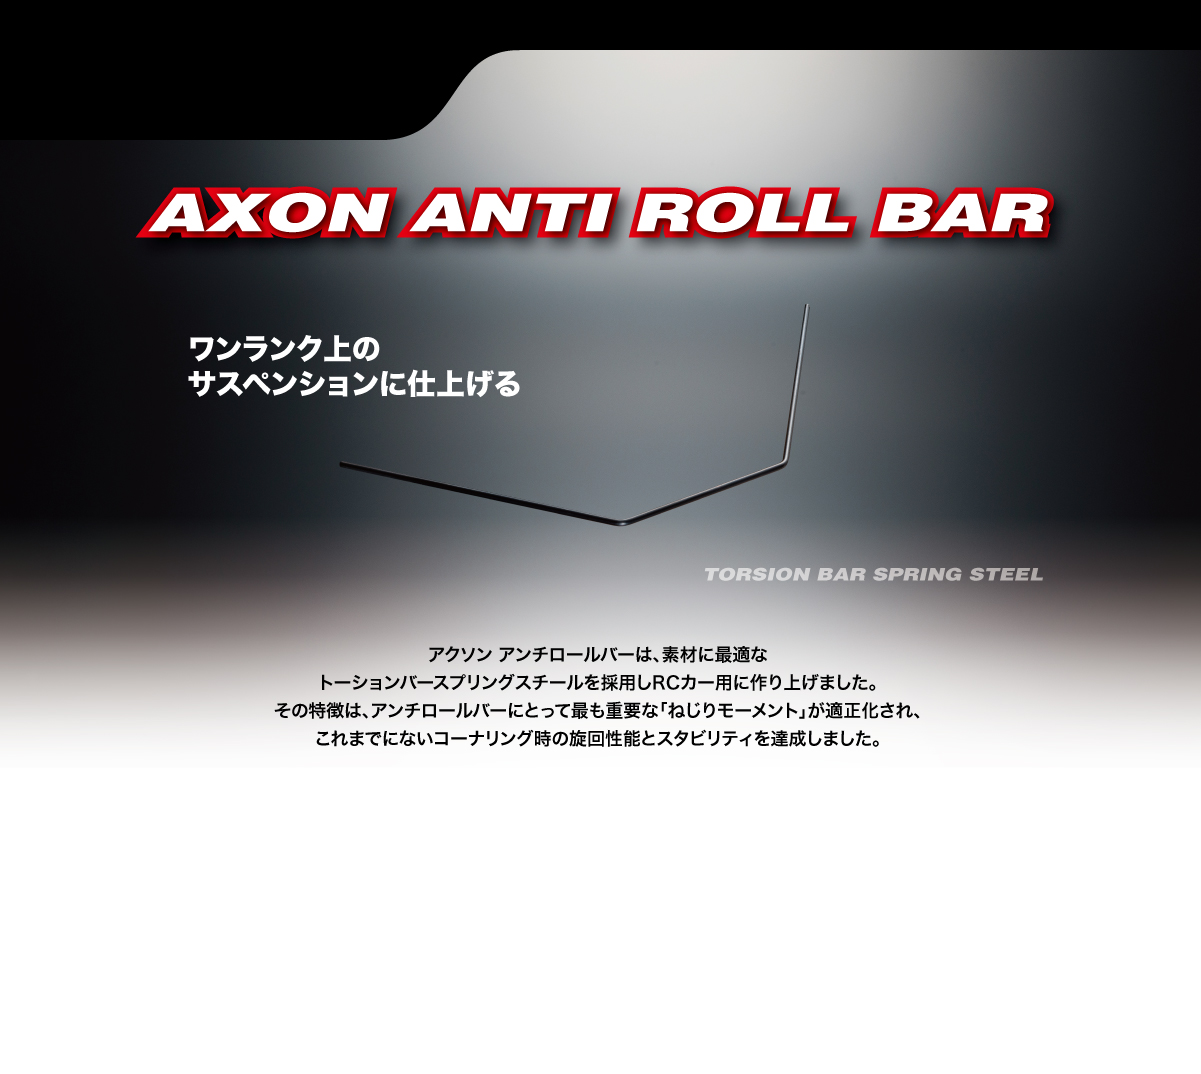 AXON AT-IR-013 AXON ANTI ROLL BAR IF14 REAR 1.3mm